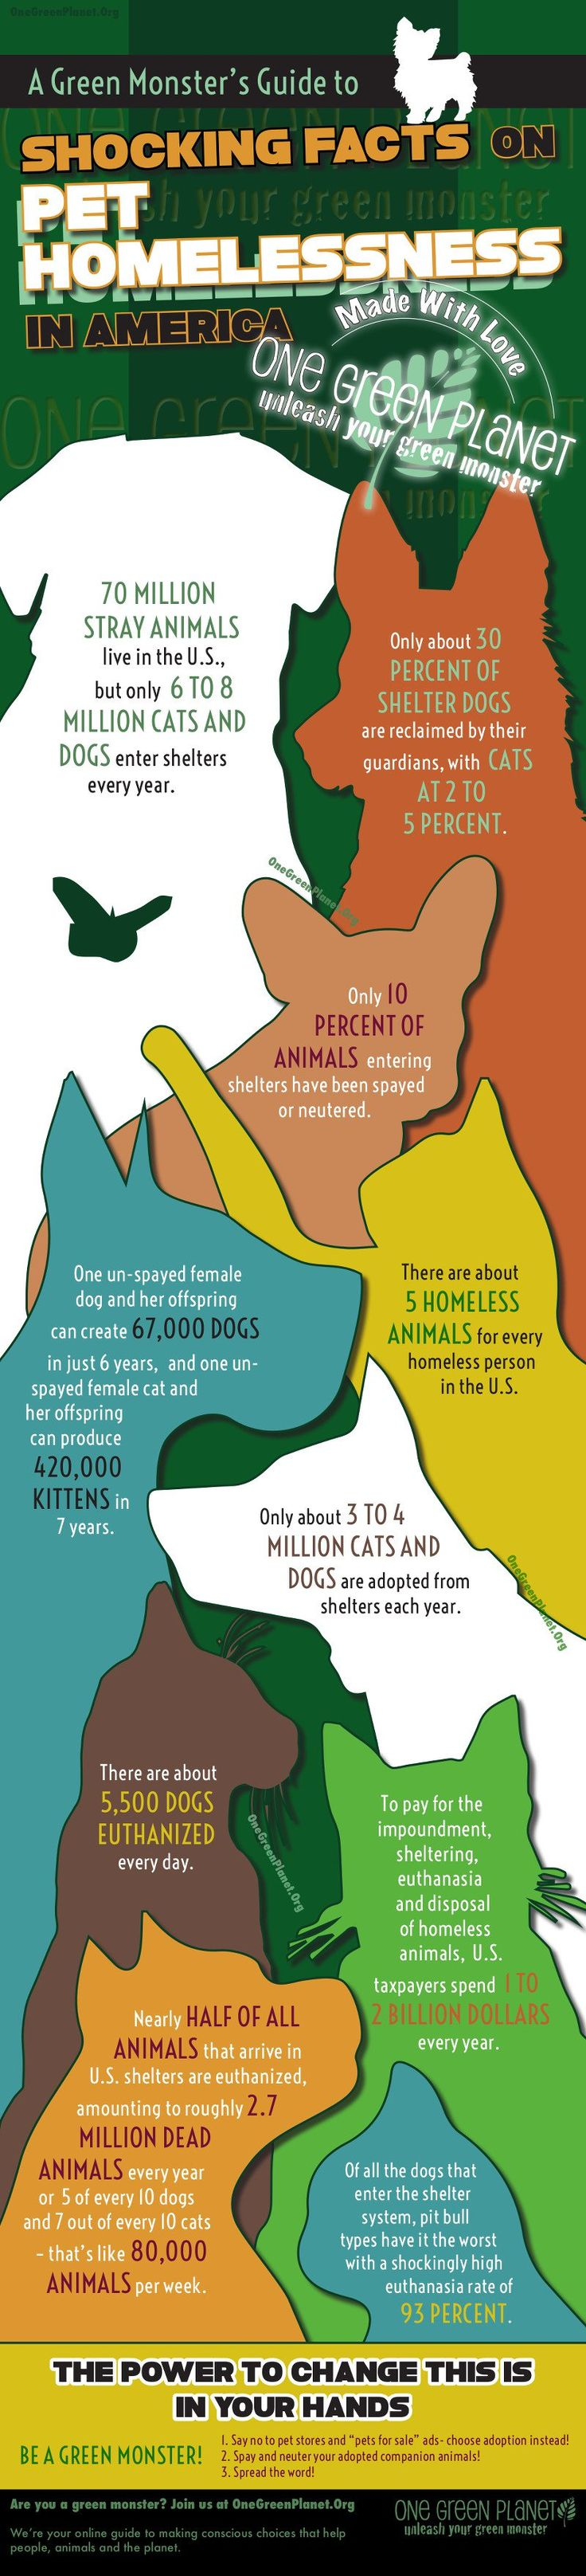 Shocking Facts on Pet Homelessness [INFOGRAPHIC] Pets